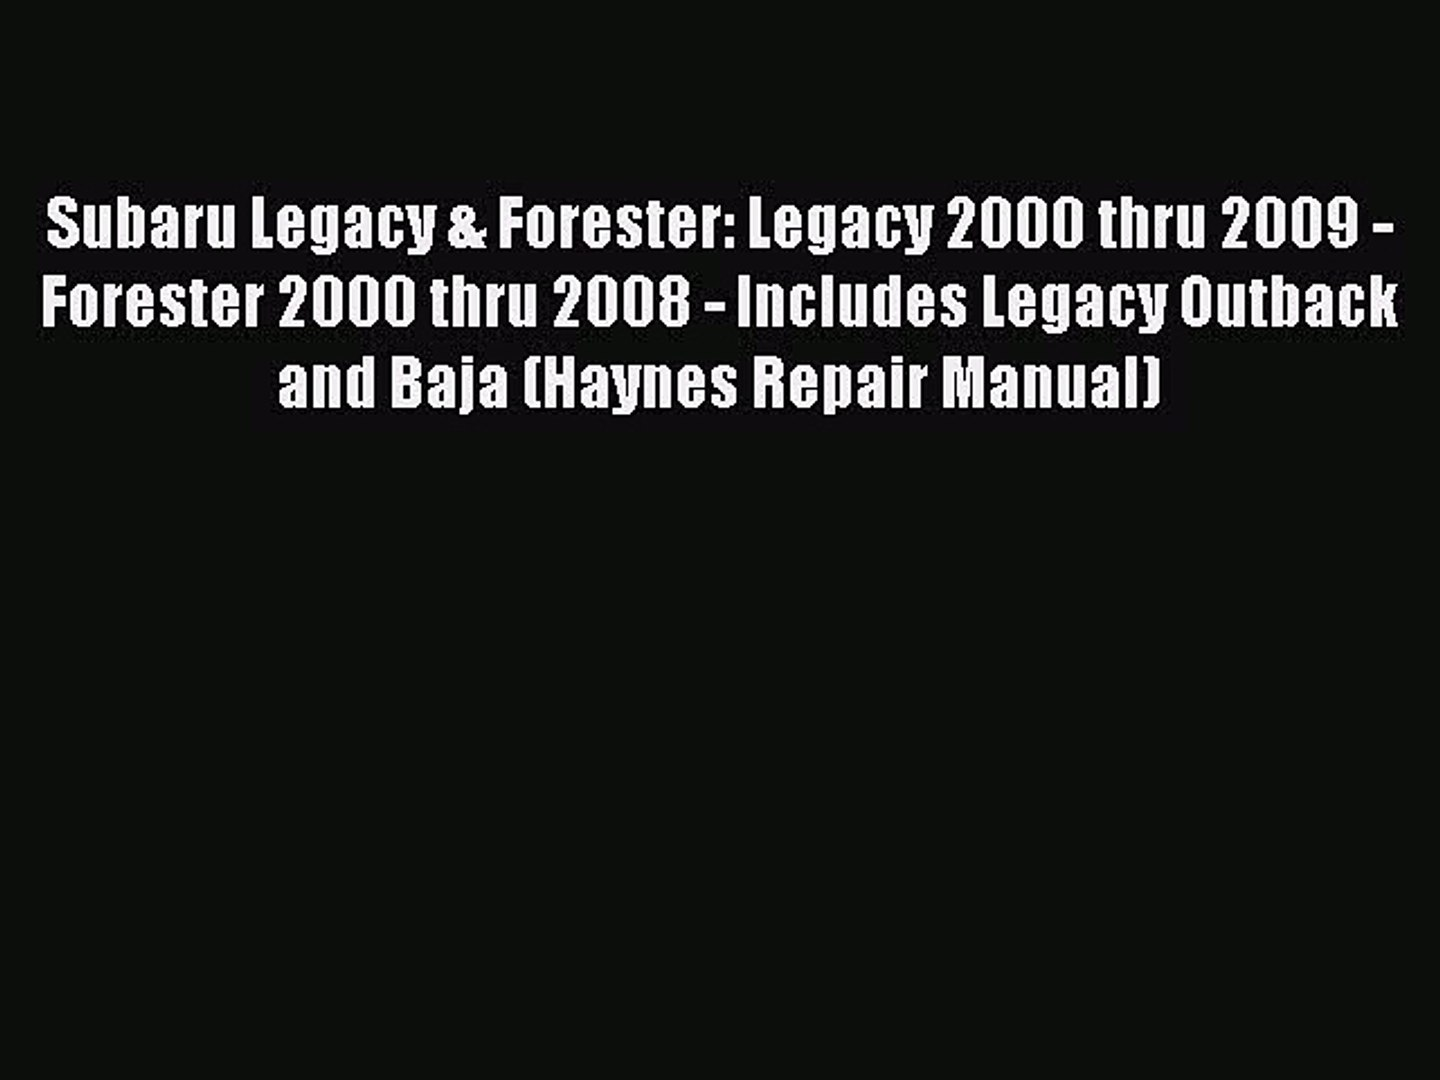 [Read Book] Subaru Legacy & Forester: Legacy 2000 thru 2009 - Forester 2000 thru 2008 - Includes